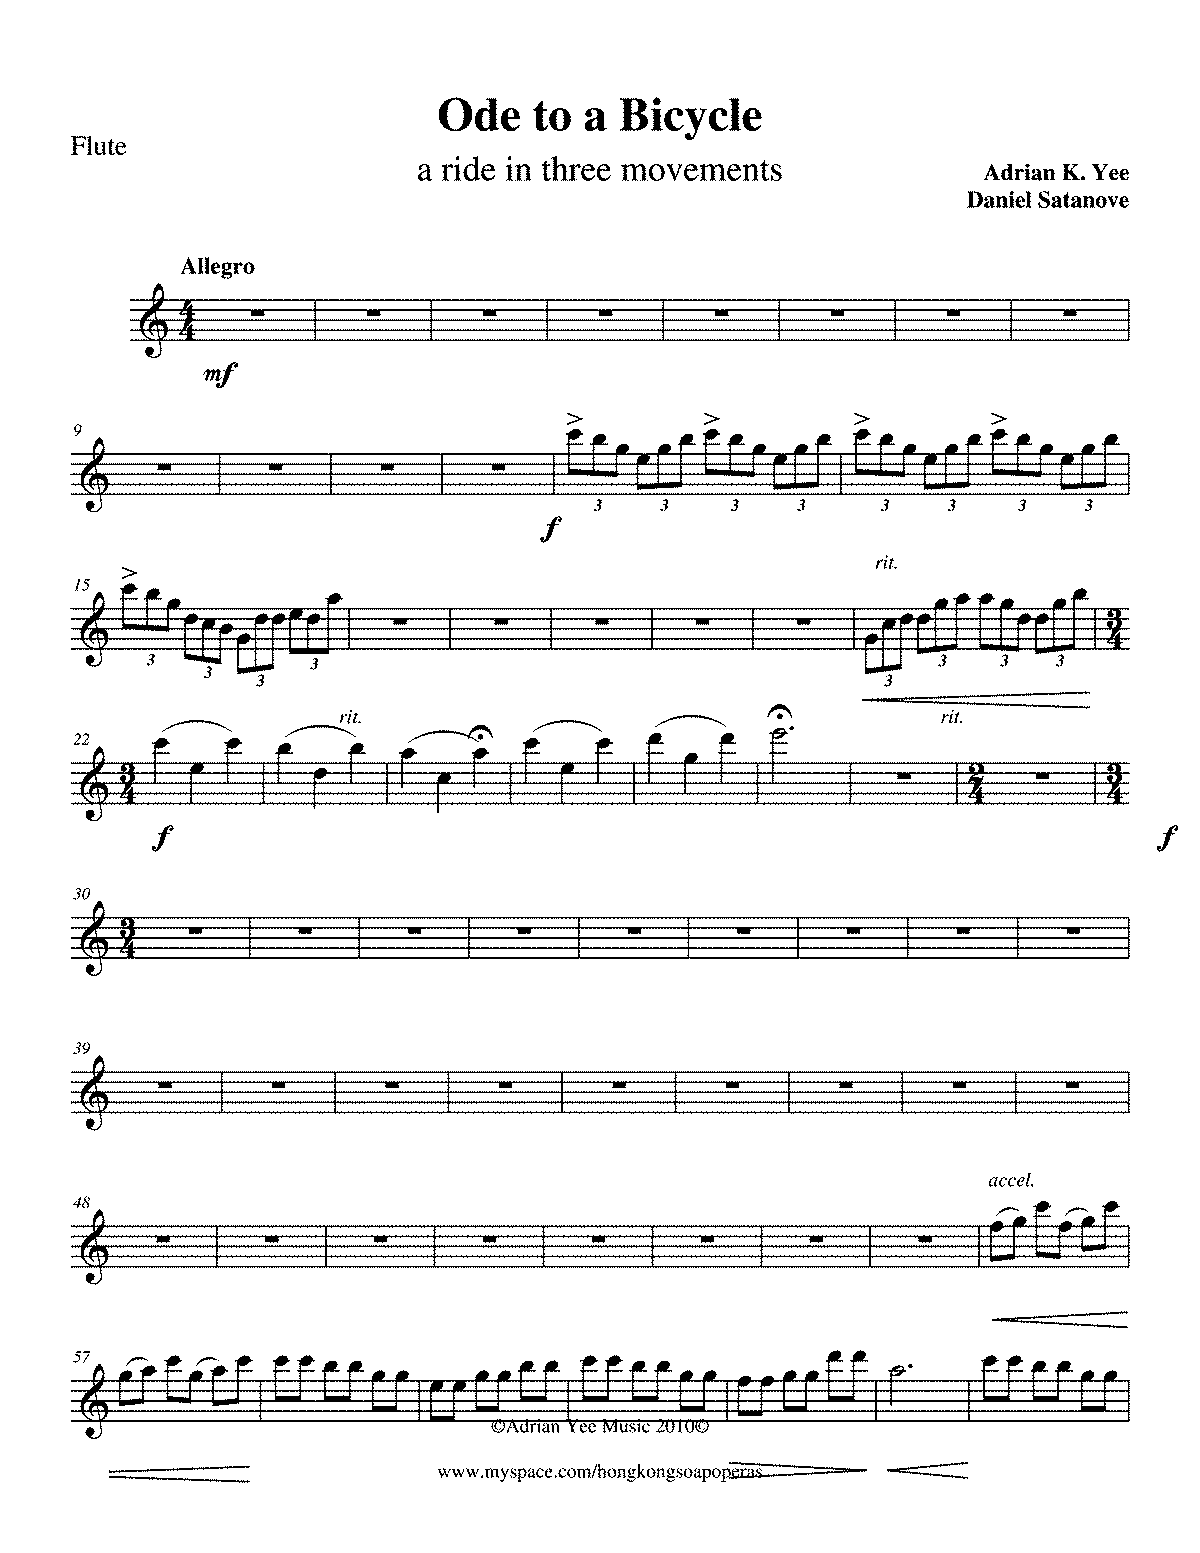 PMLP129067-Ode to a Bicycle a ride in three movements (Flute).pdf